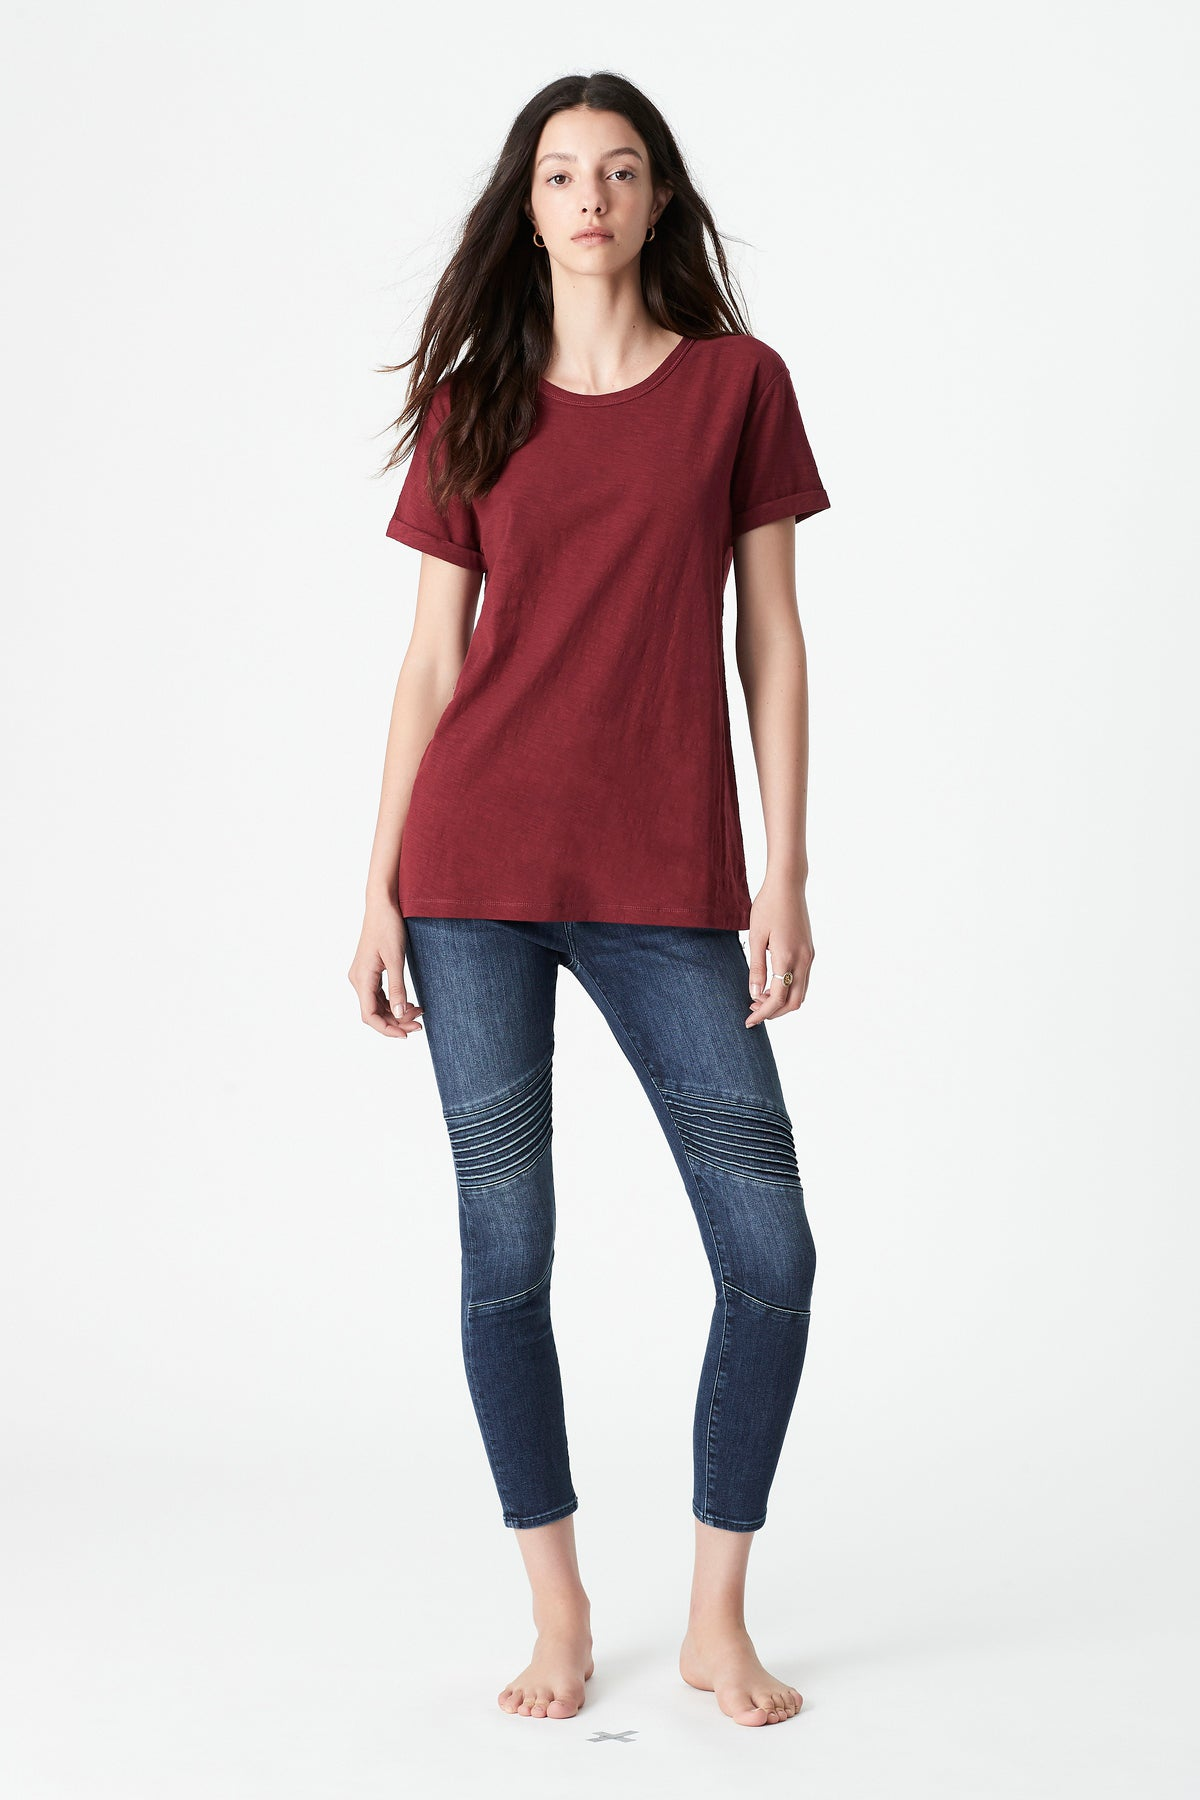 Evie Rolled Sleeve T-Shirt in Mulberry